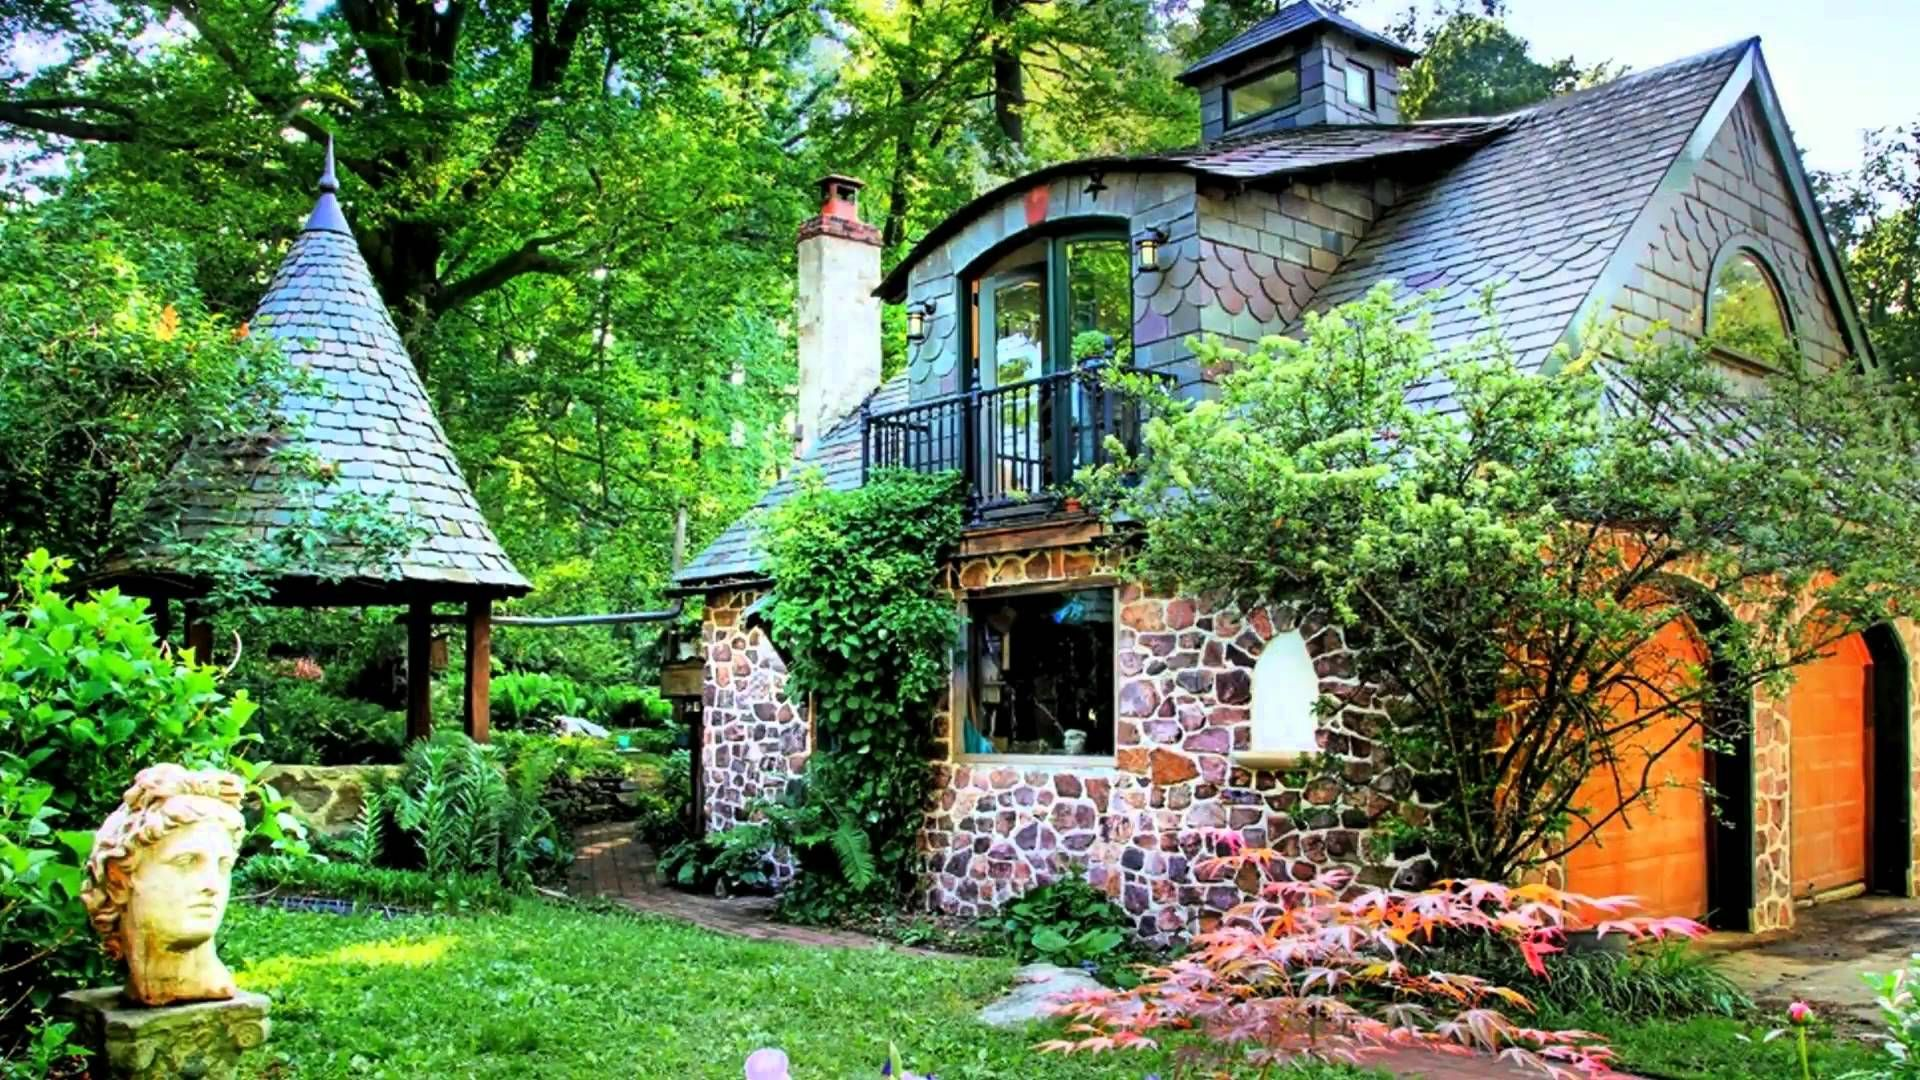 Maxresdefault Jpg 1920 1080 Fairytale House Tiny House Design Traditional Exterior